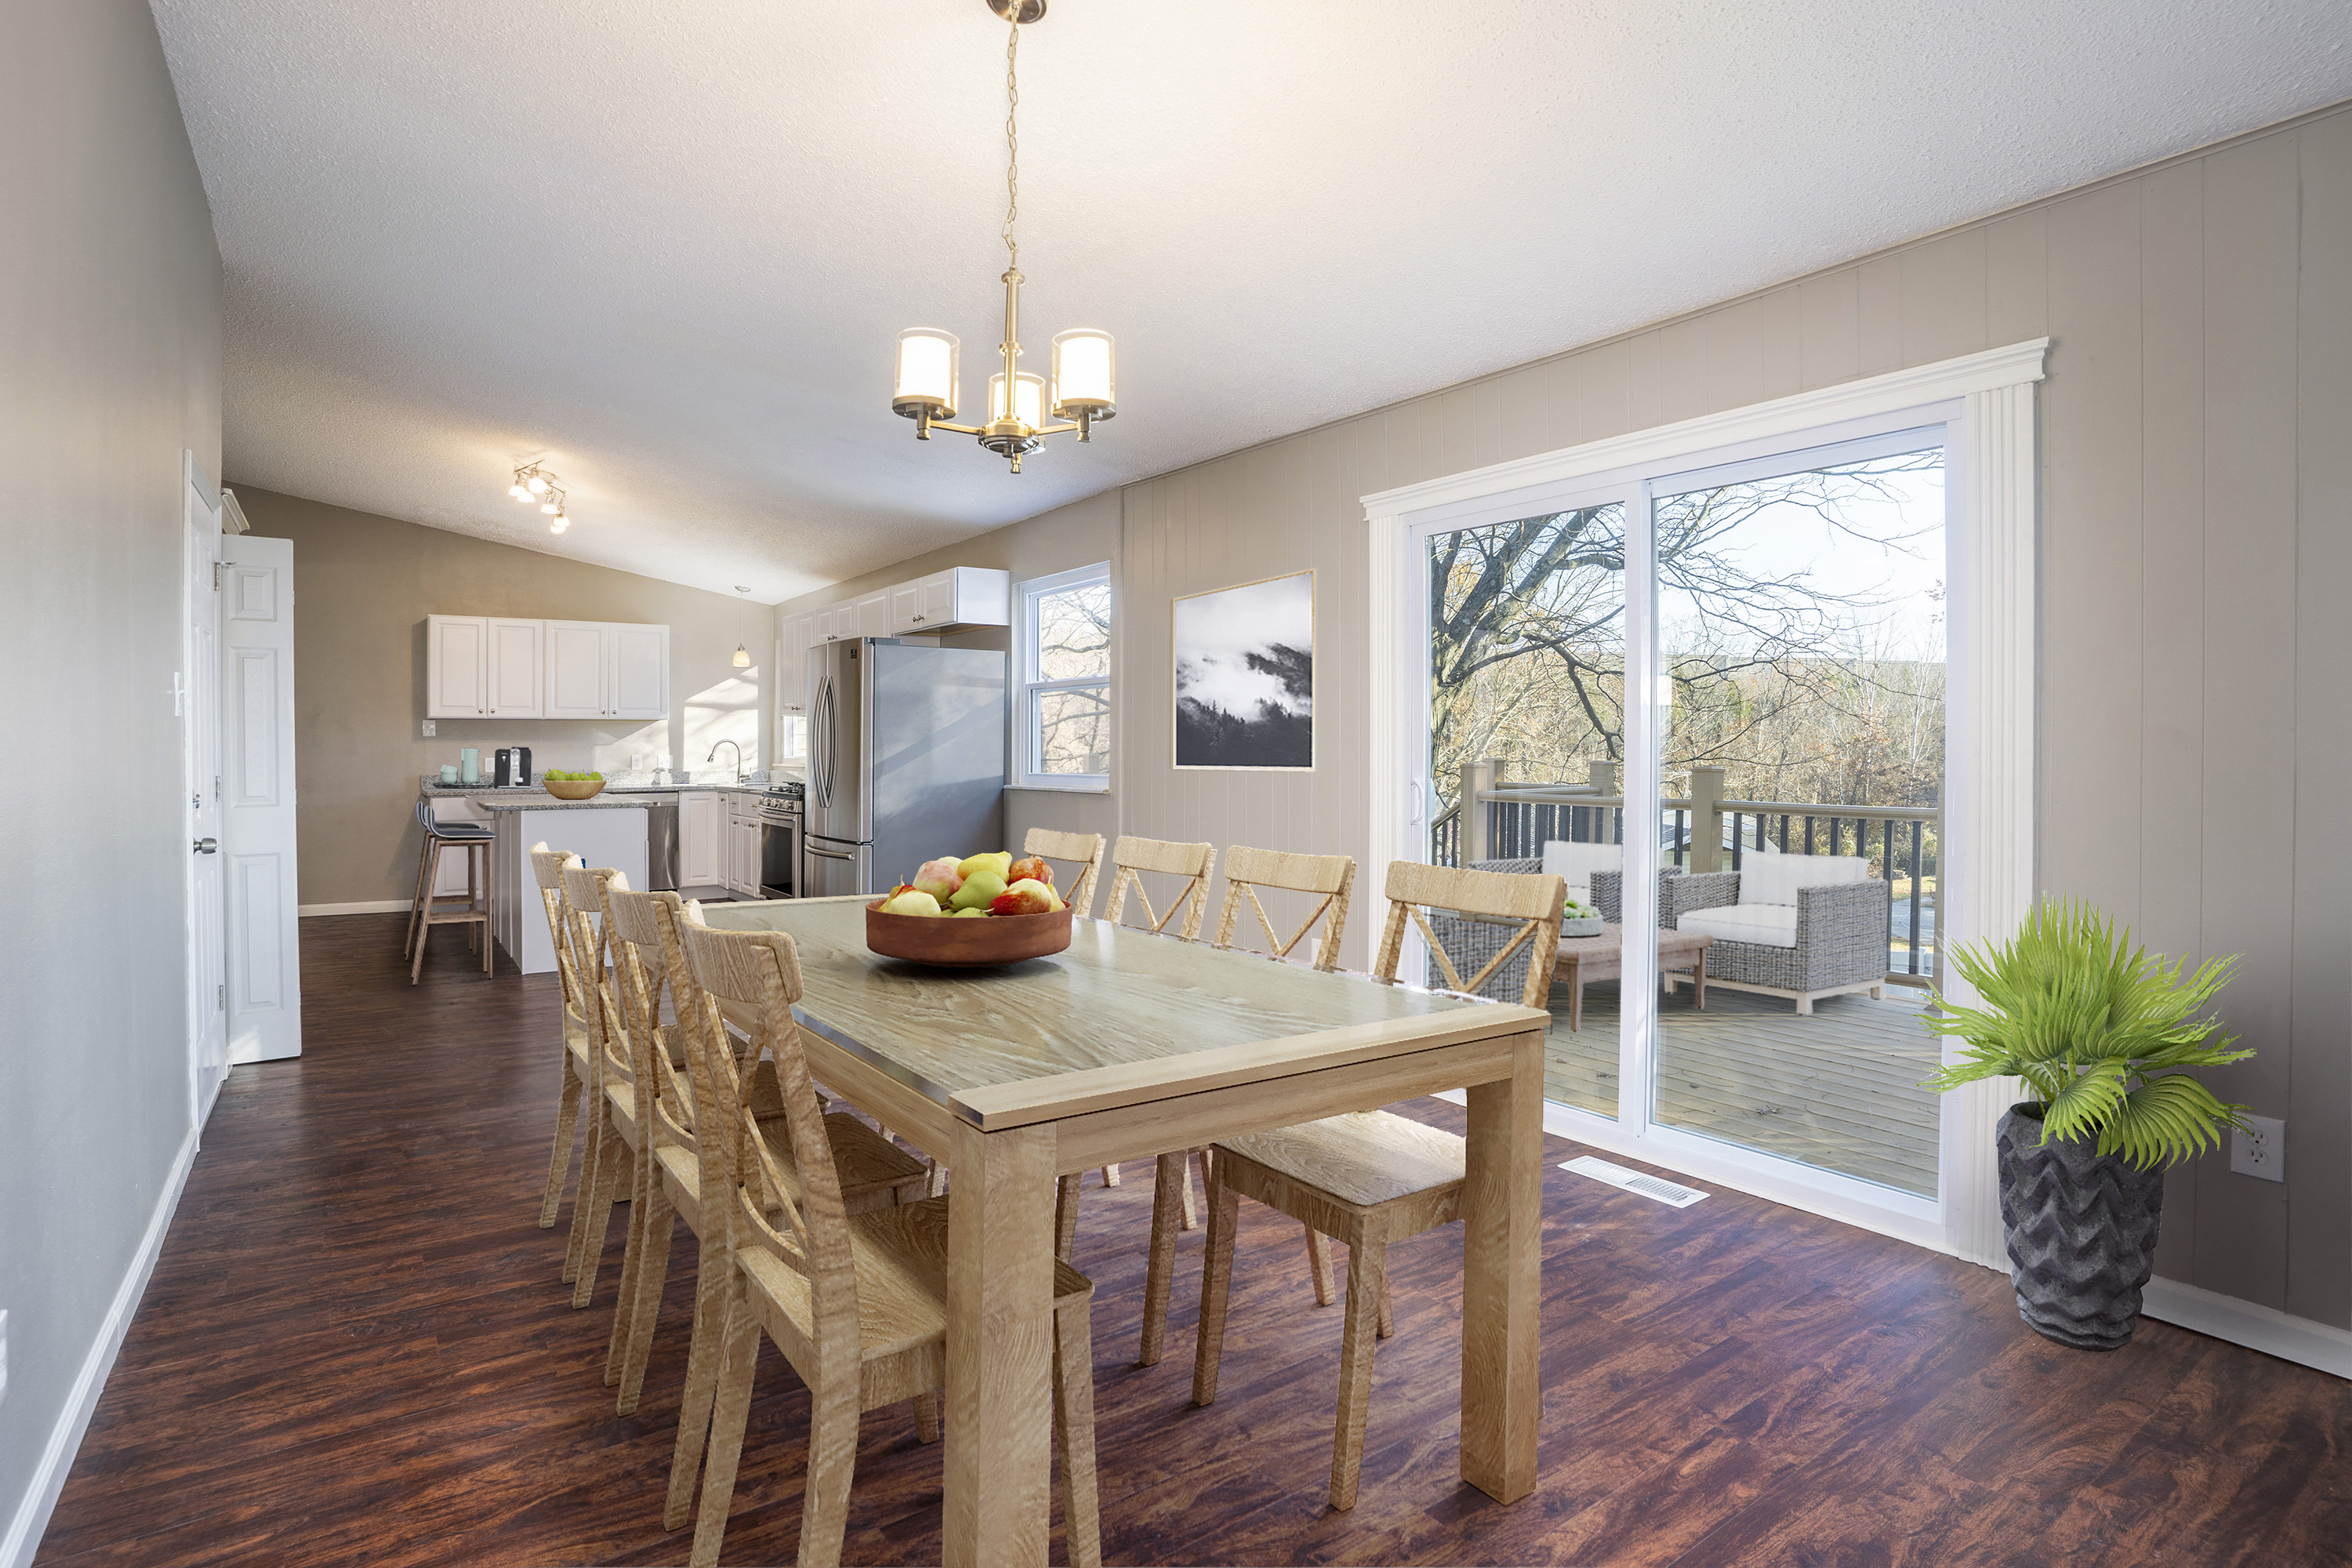 Home Trends in 2020 To Look Out For